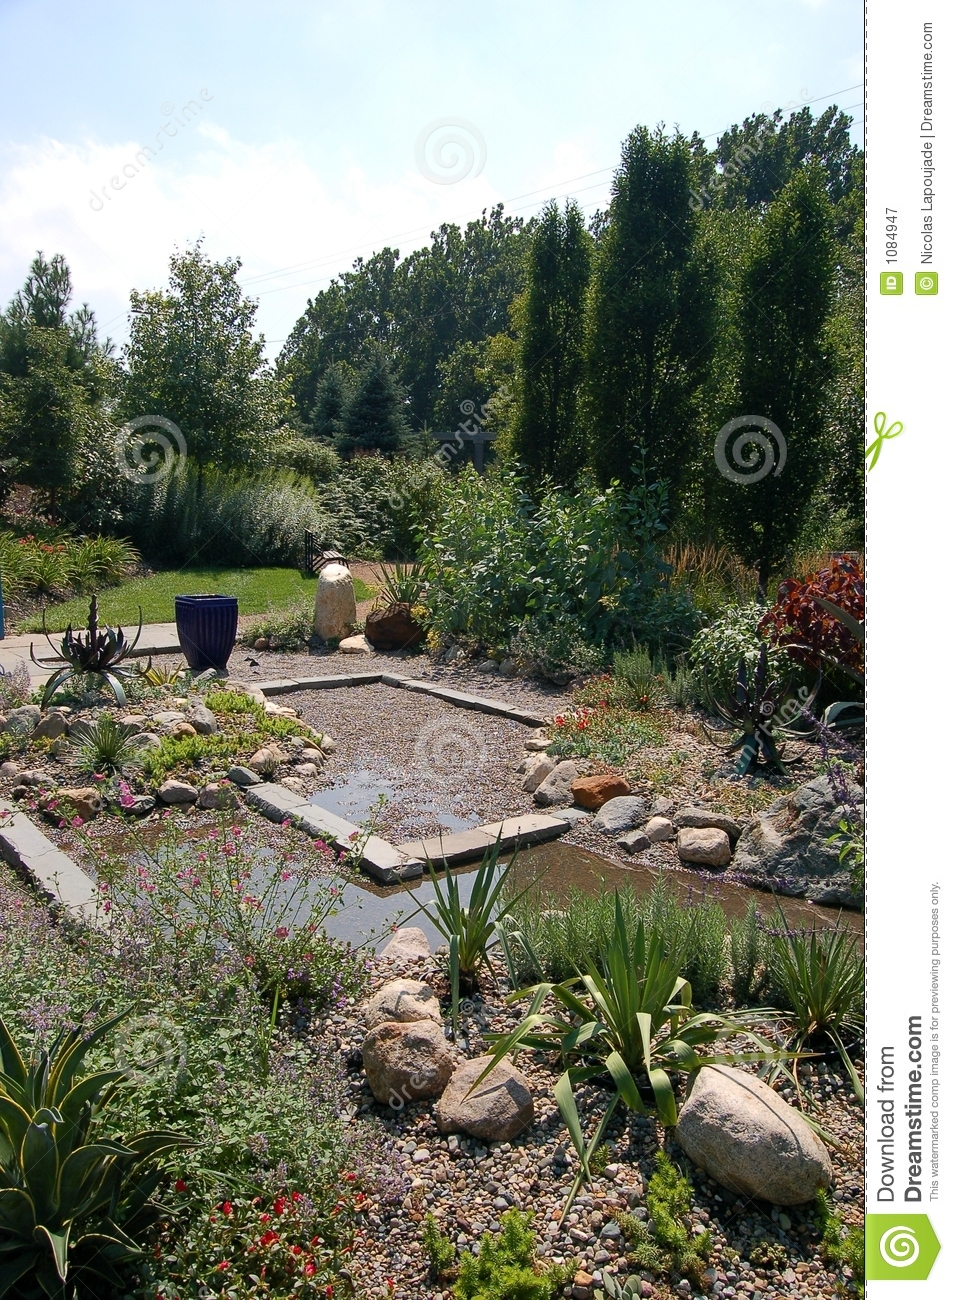 Zen pond royalty free stock photography image 1084947 for Garden pool zen area